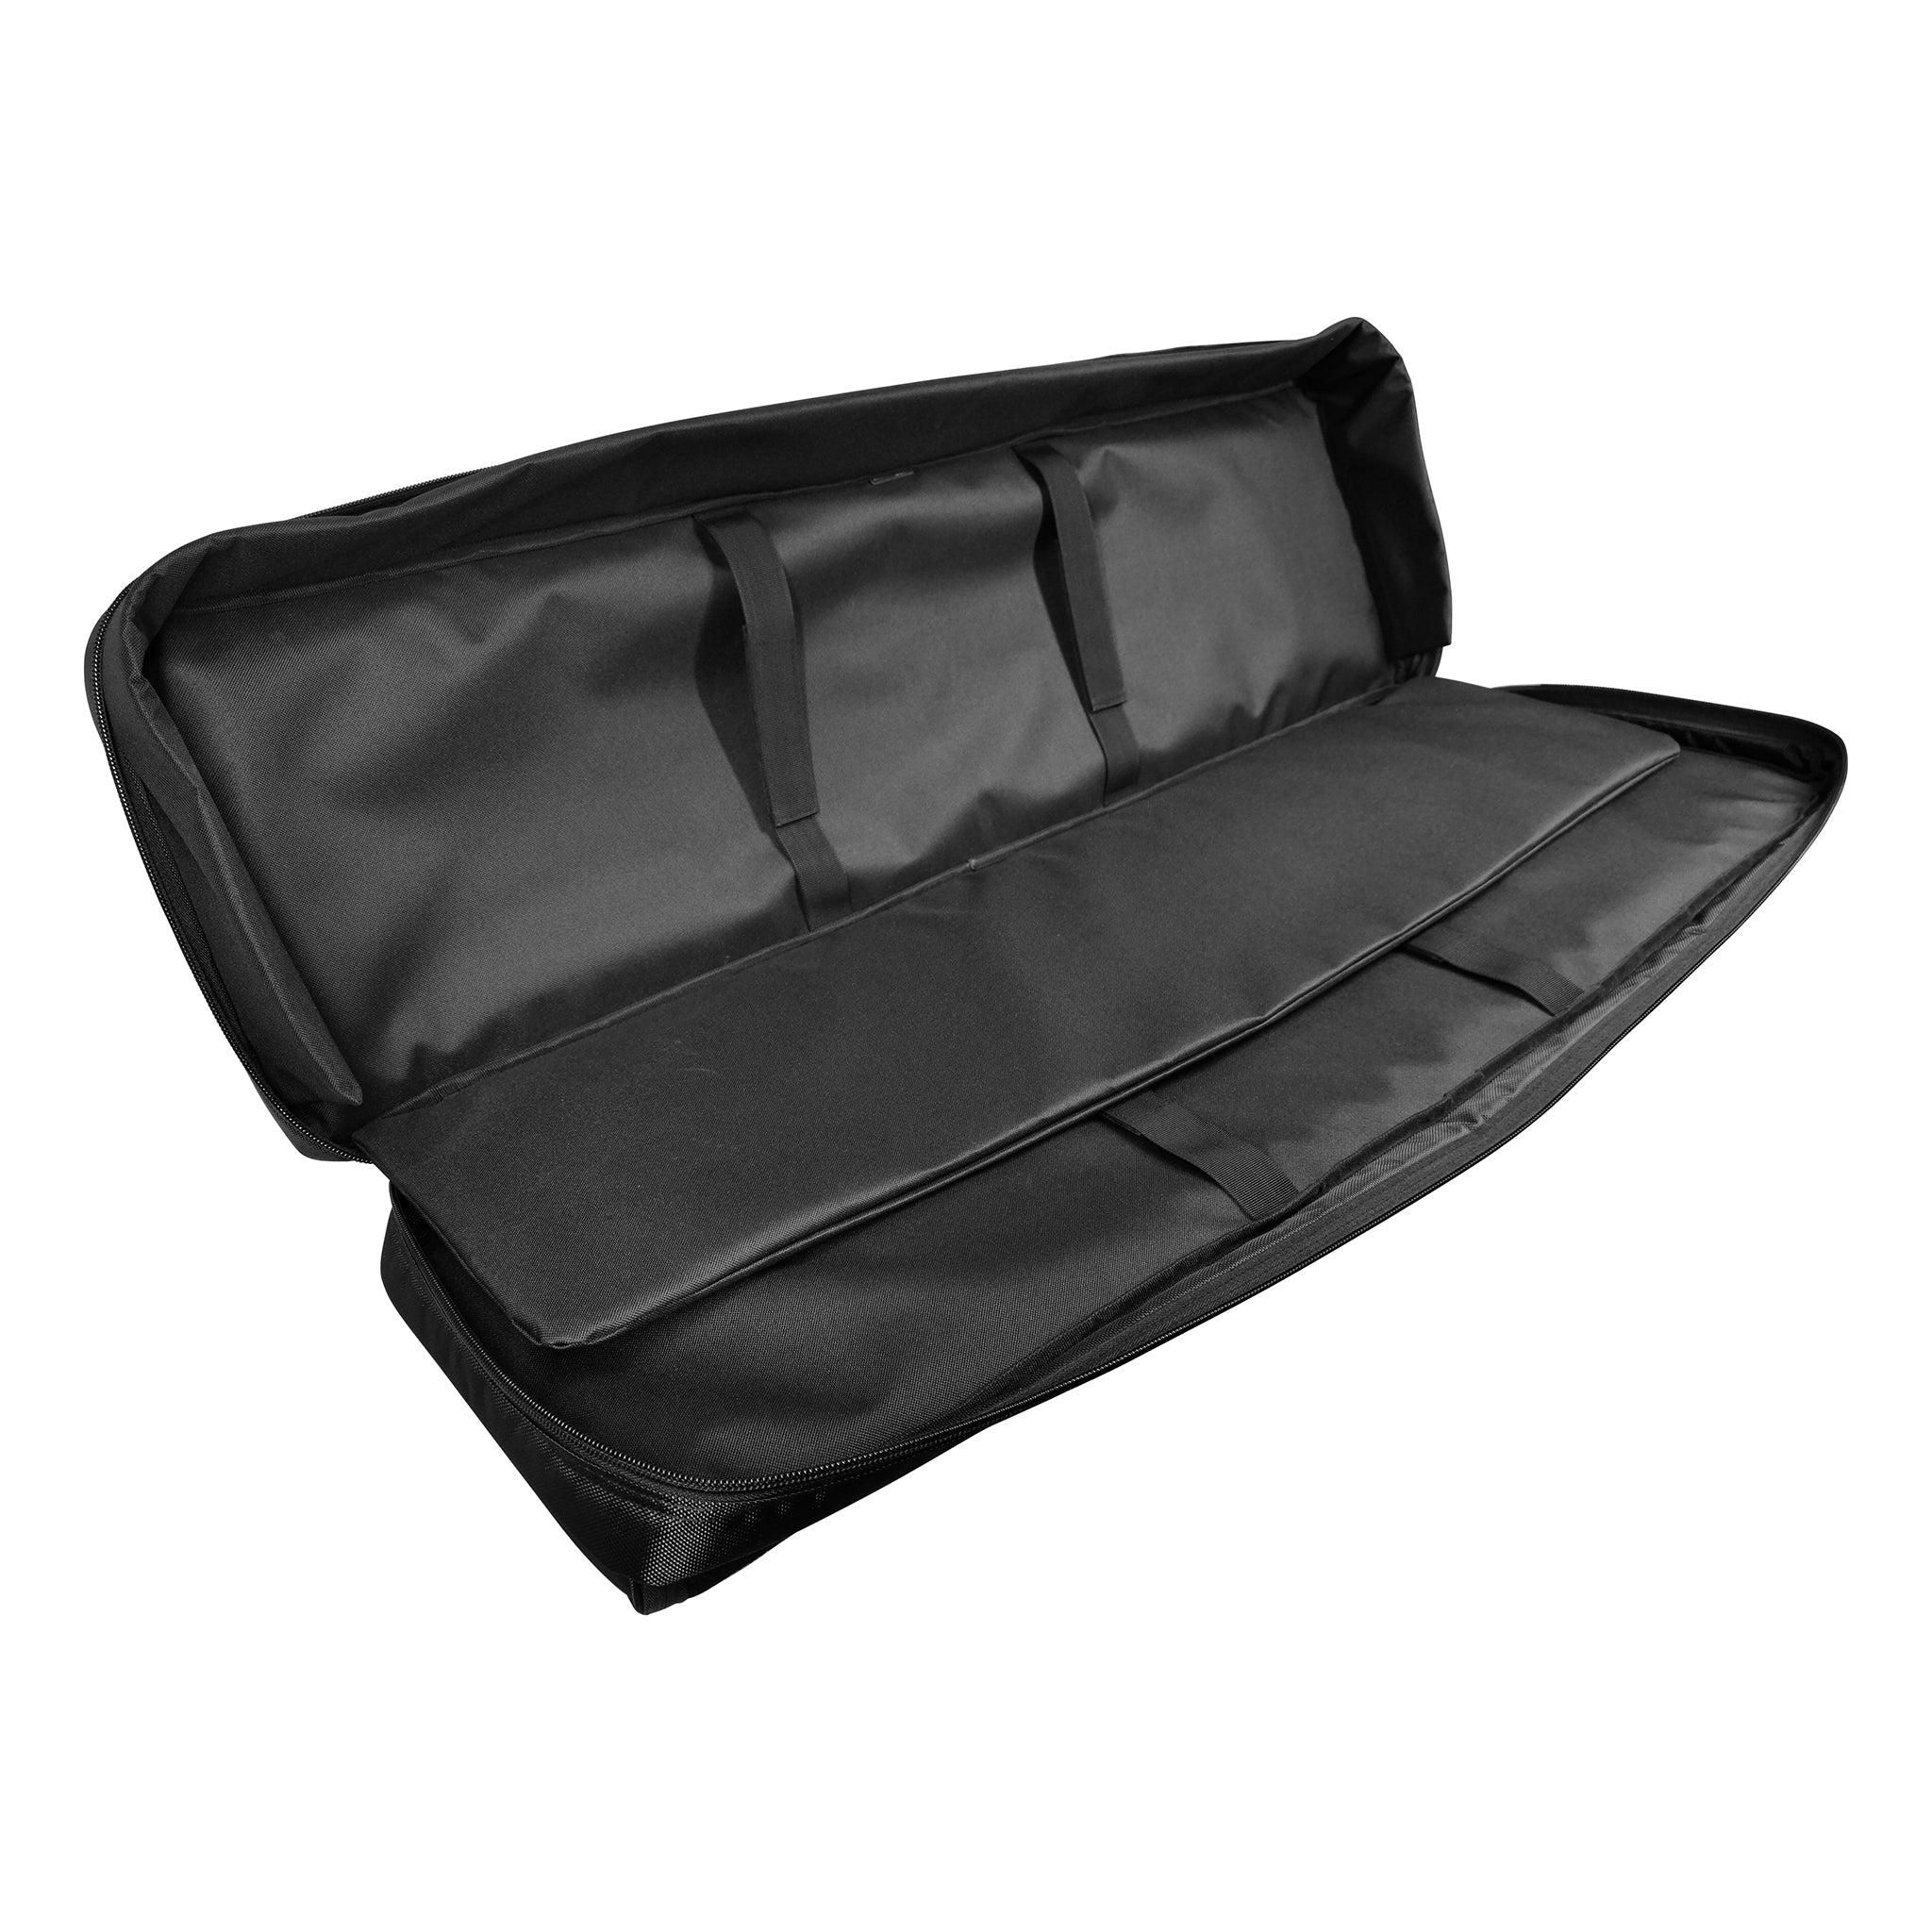 "42"" Tactical Double Rifle Case - 1680D Series"